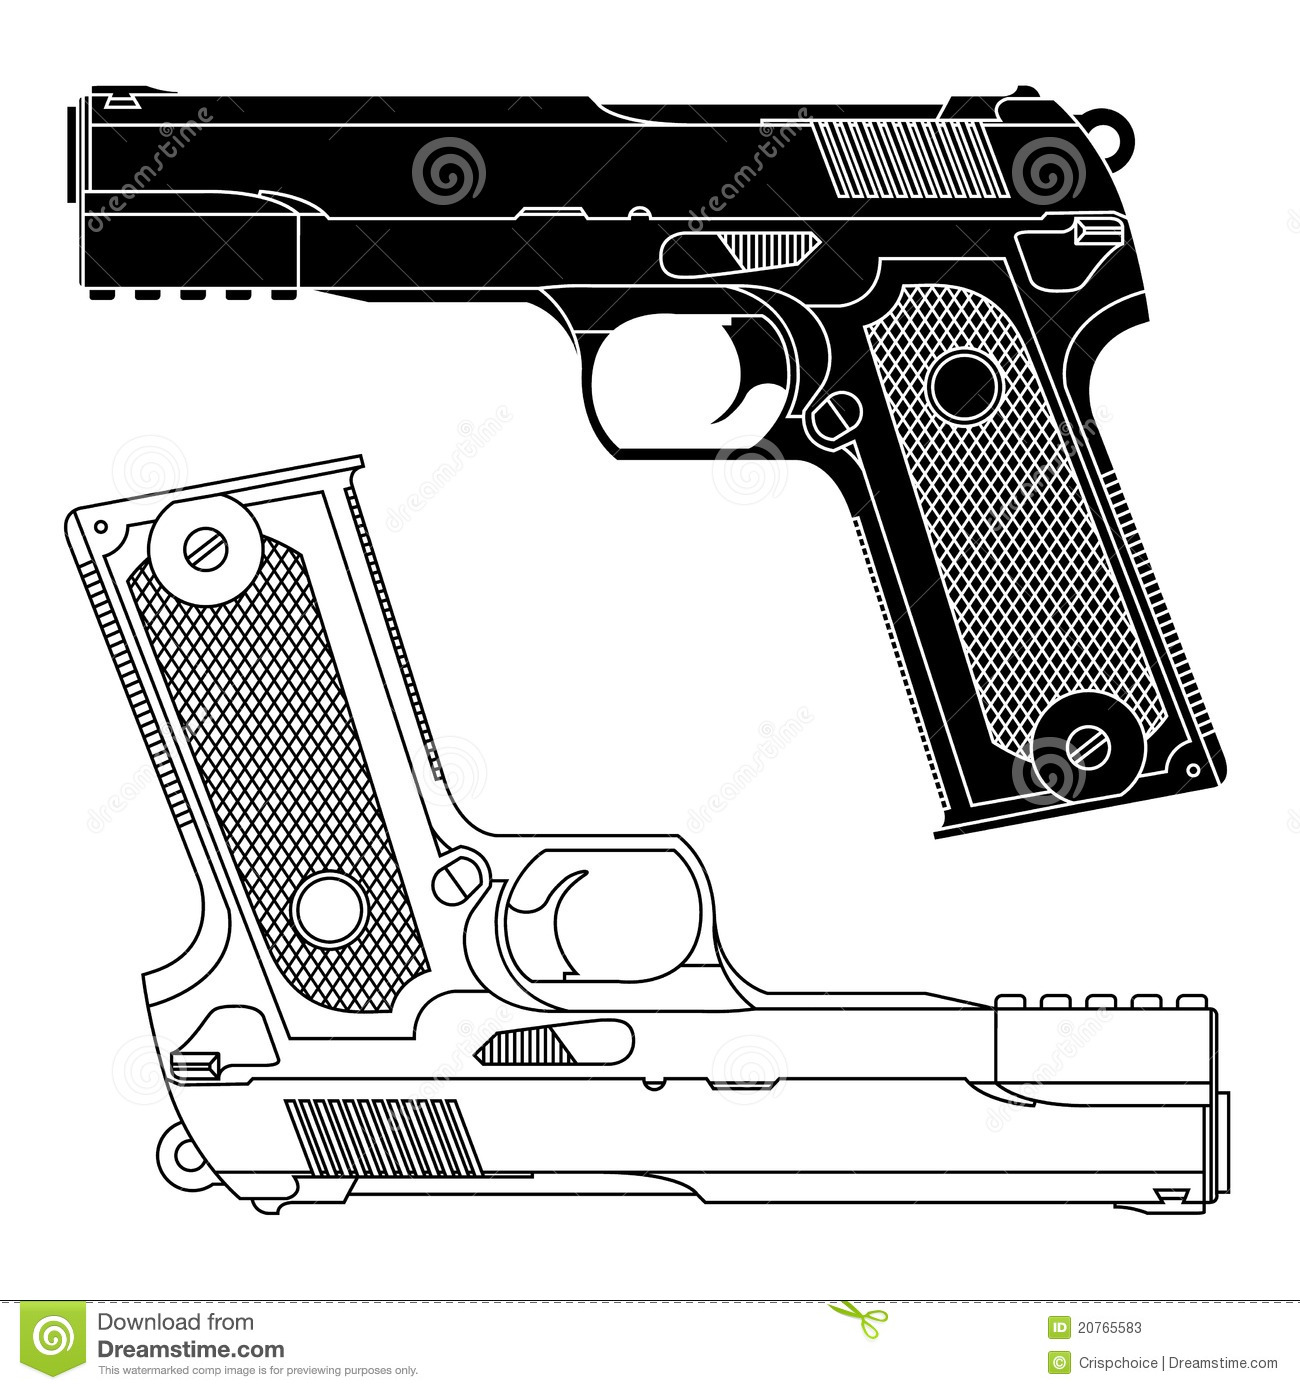 One Line Art Gun : Technical line drawing of mm pistol gun stock vector